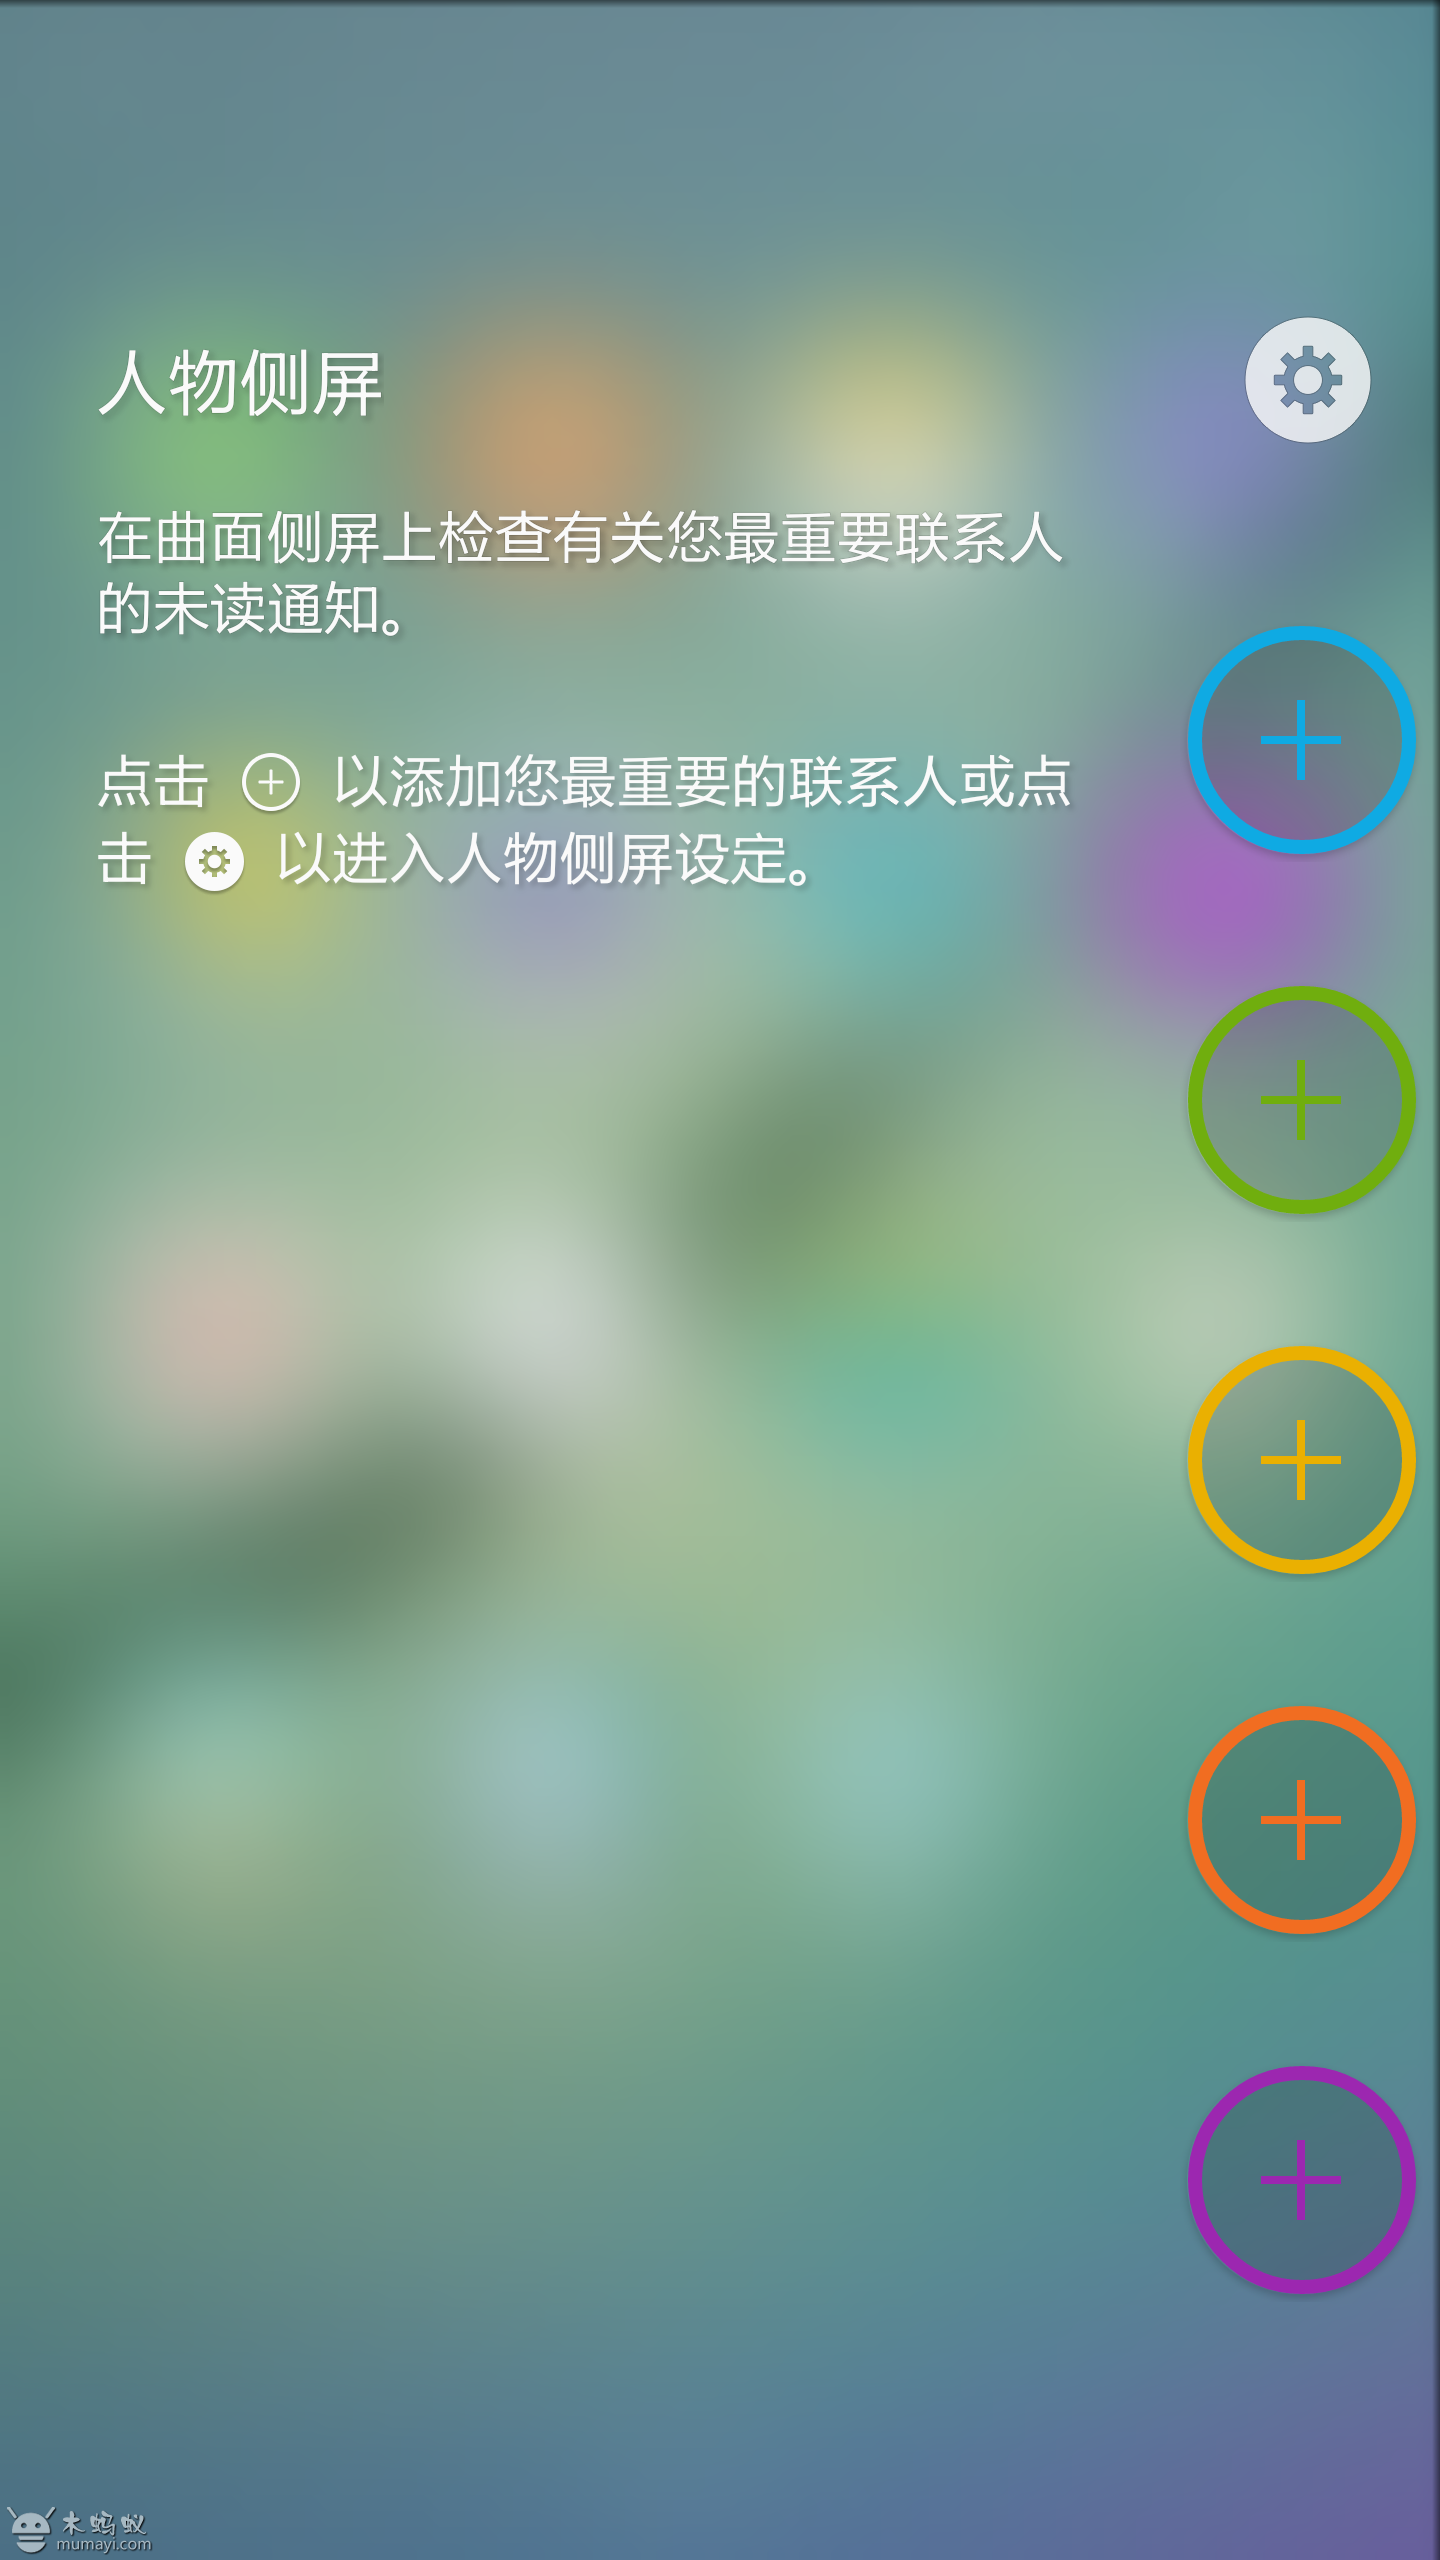 Screenshot_2015-06-16-15-16-08.png